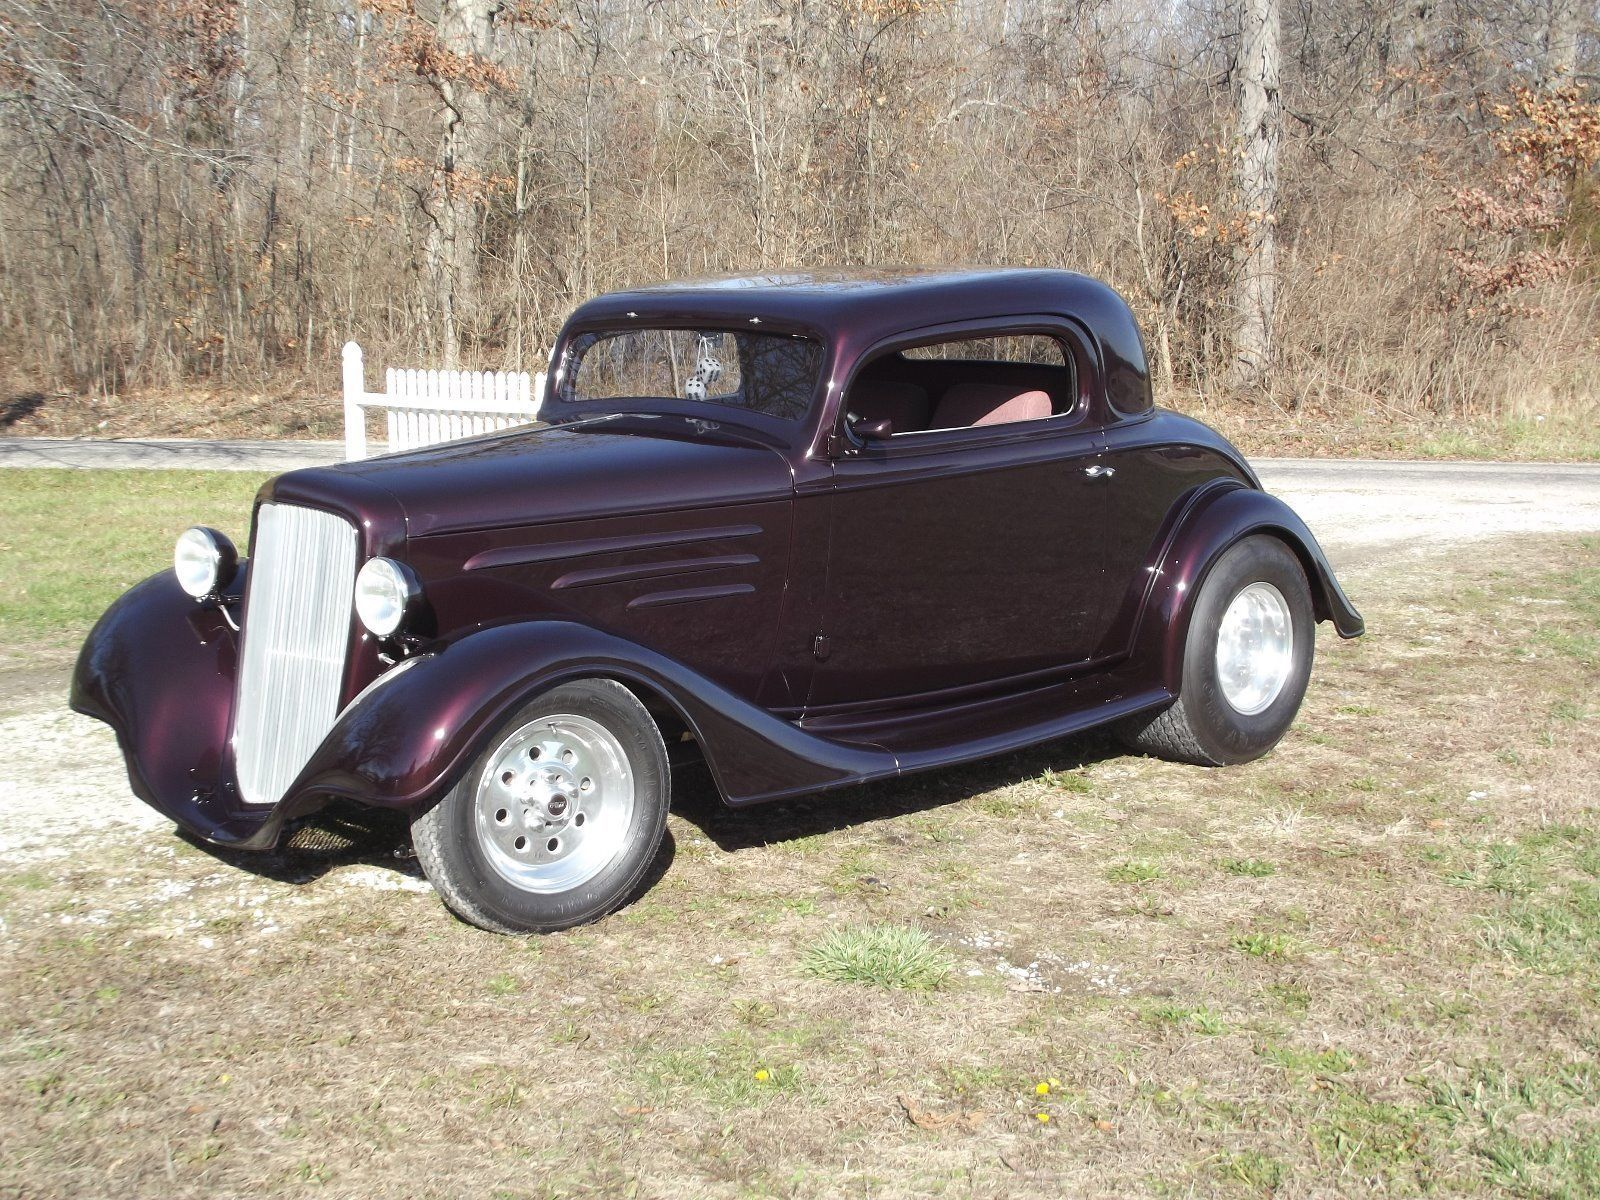 1934 Chevy Coupe Show Car Maintenance/restoration of old/vintage ...